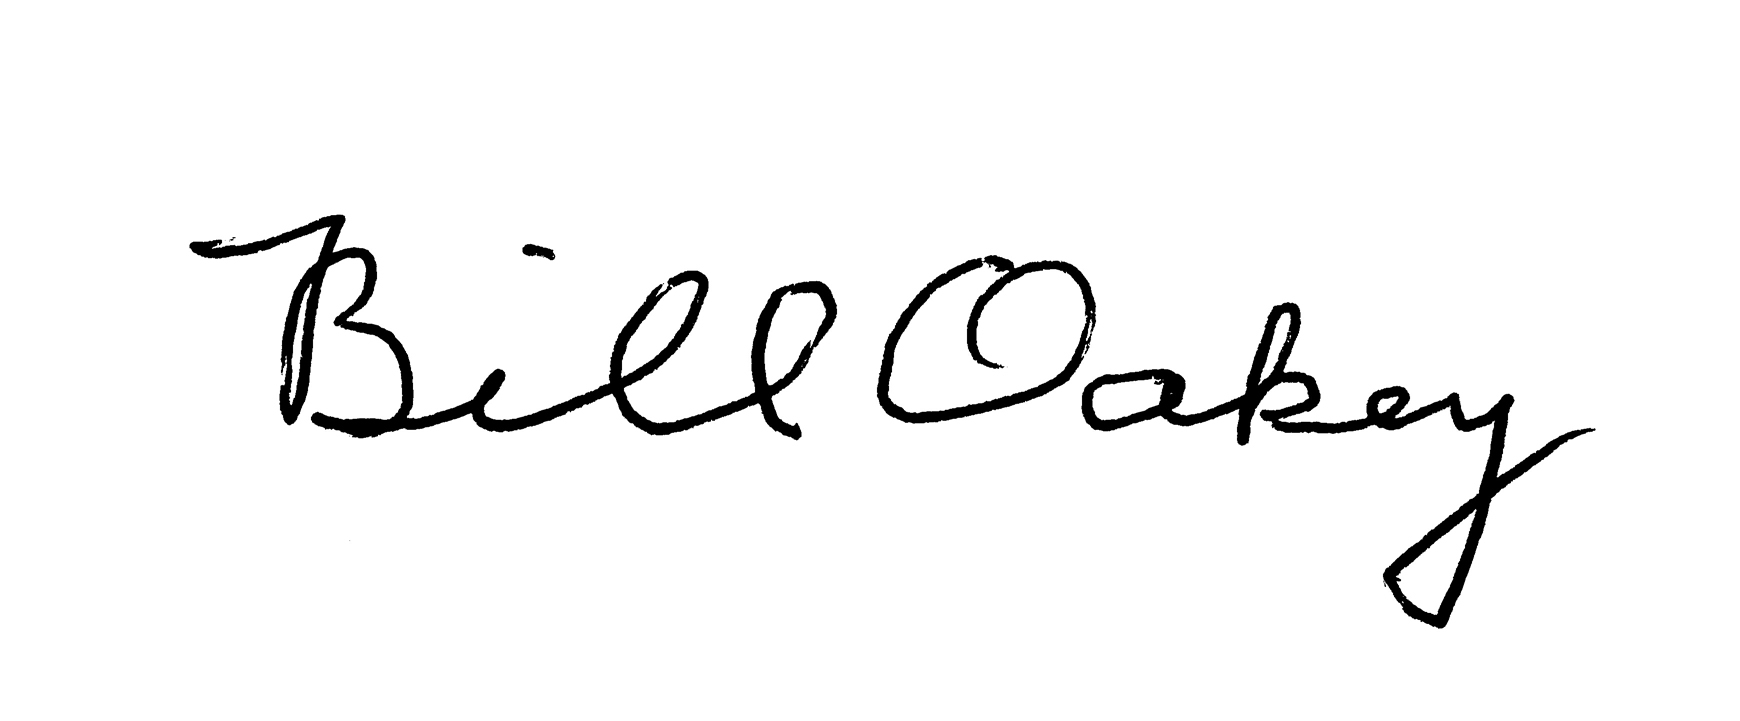 Bill Oakey Signature